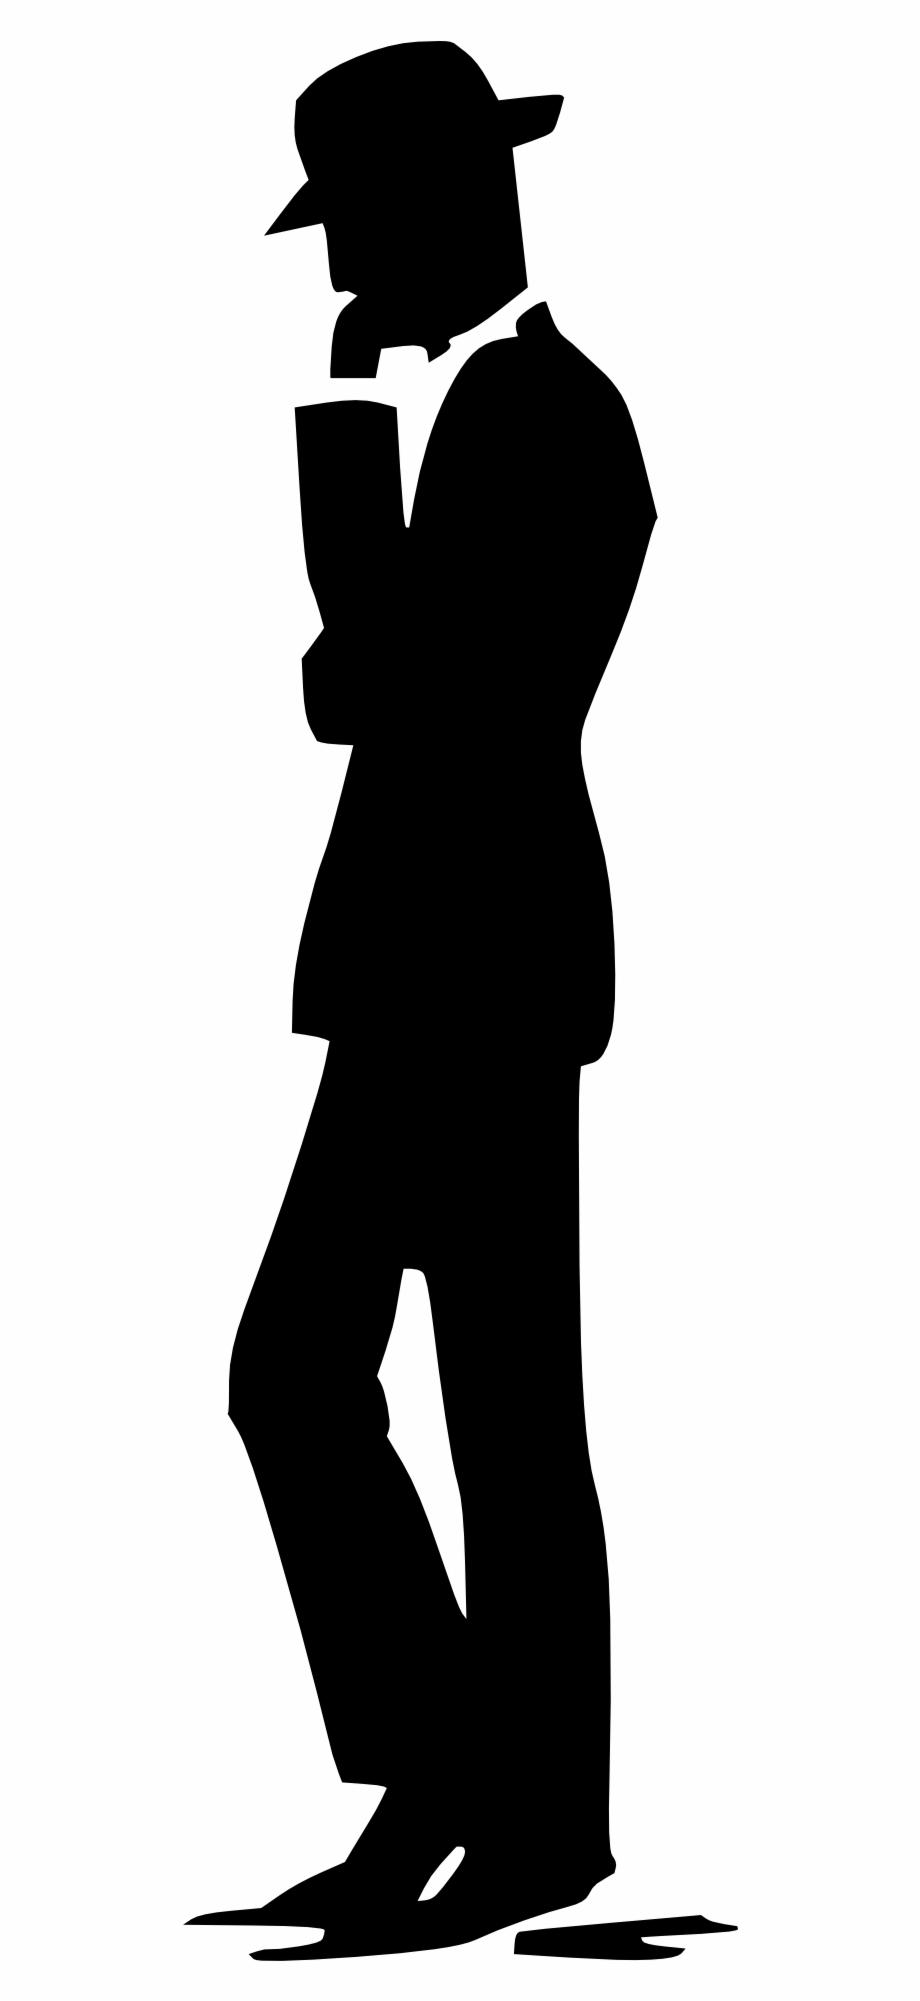 Thinking man silhouette free clipart banner library stock Thinking People Man Guy Png Image - Man Silhouette Drawing ... banner library stock